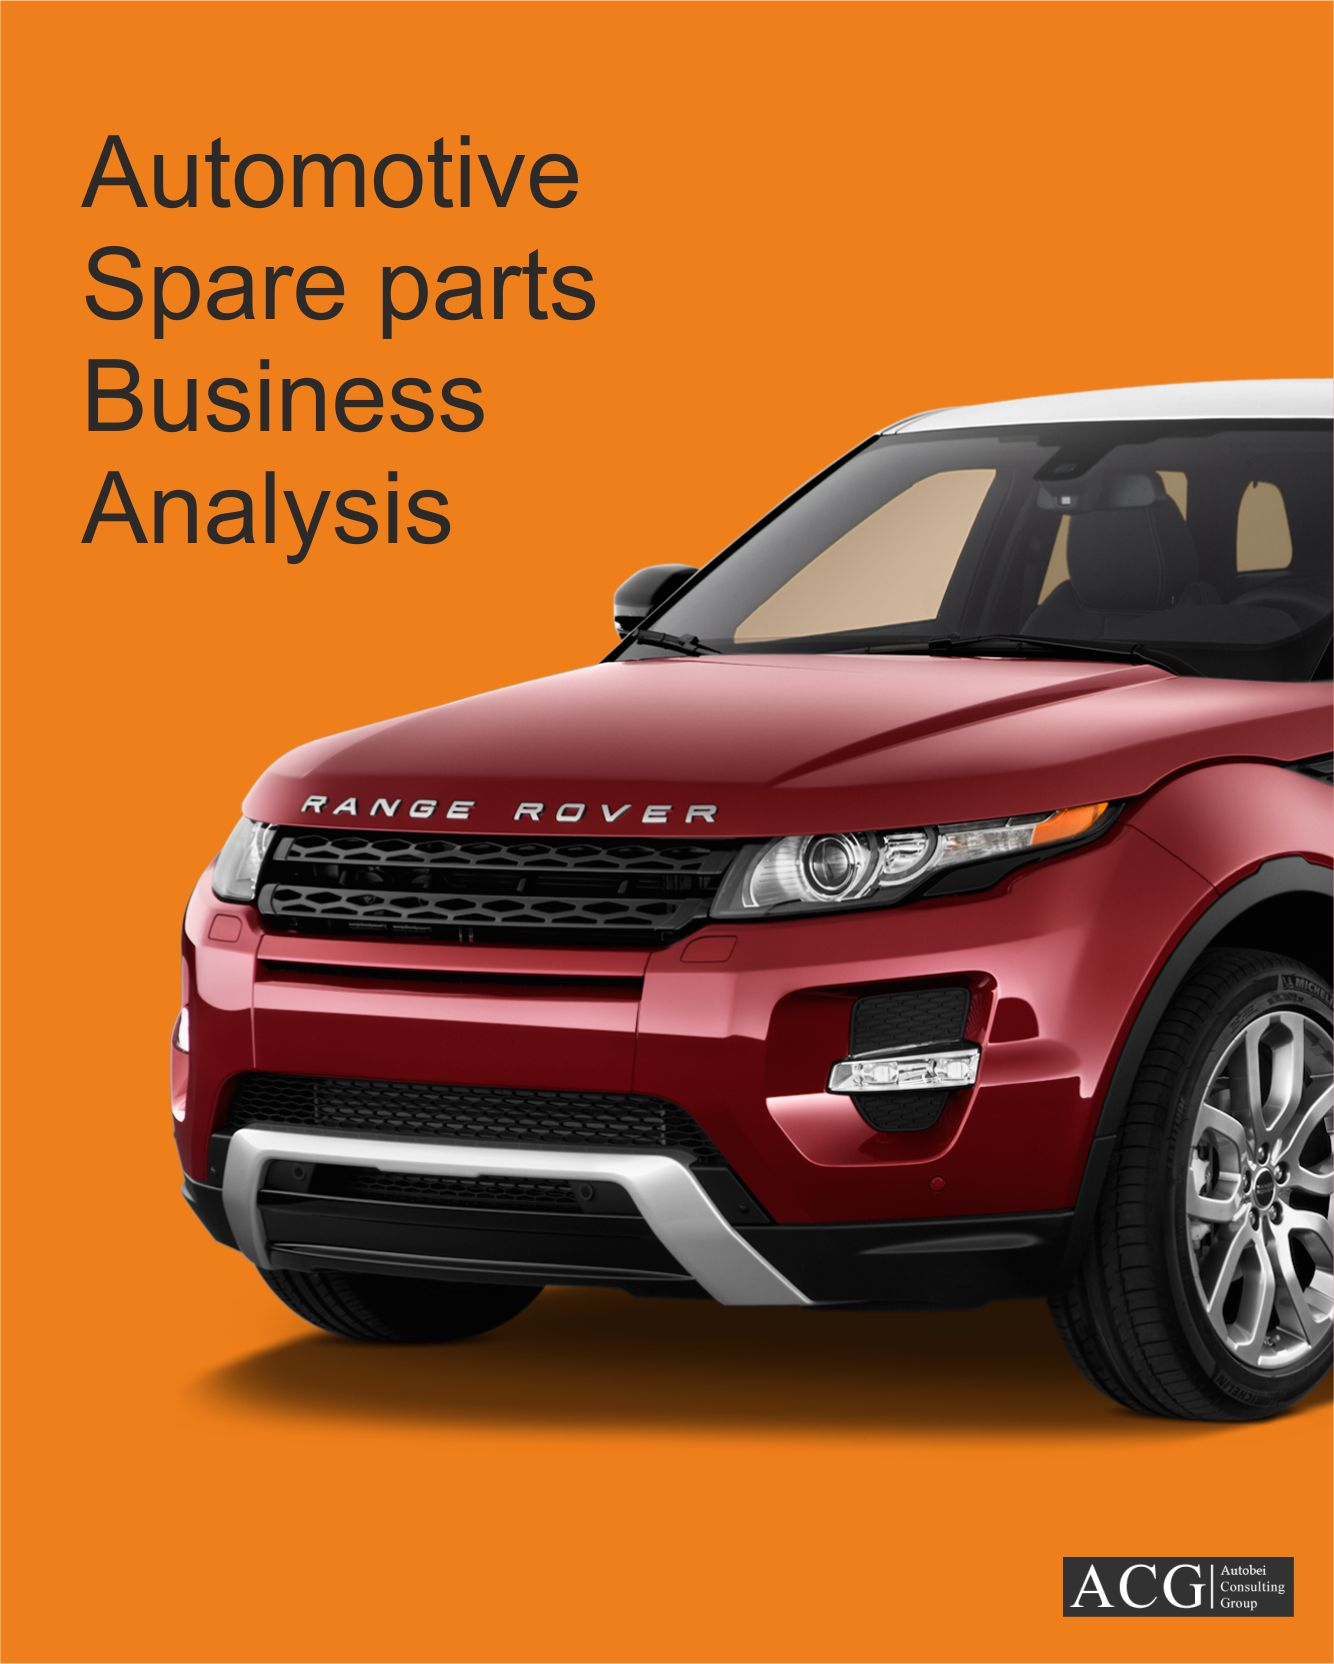 Automotive Spare parts Analysis